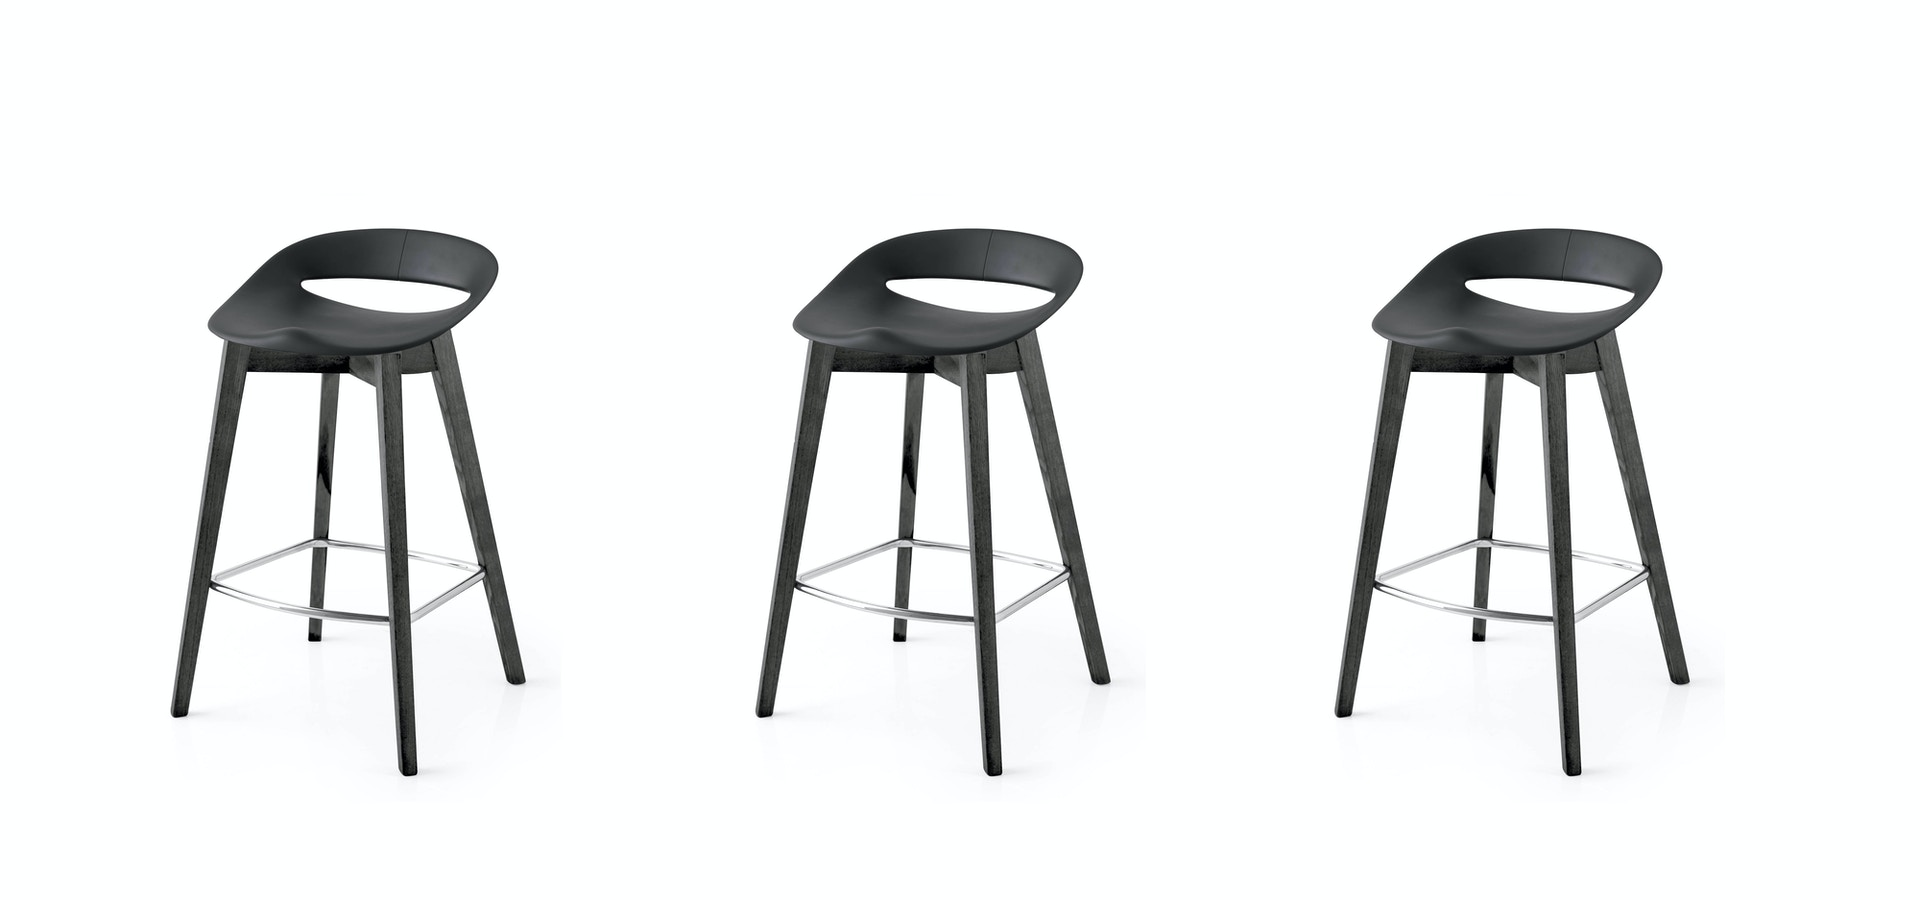 Stools Stosa - Model Clematide 10271